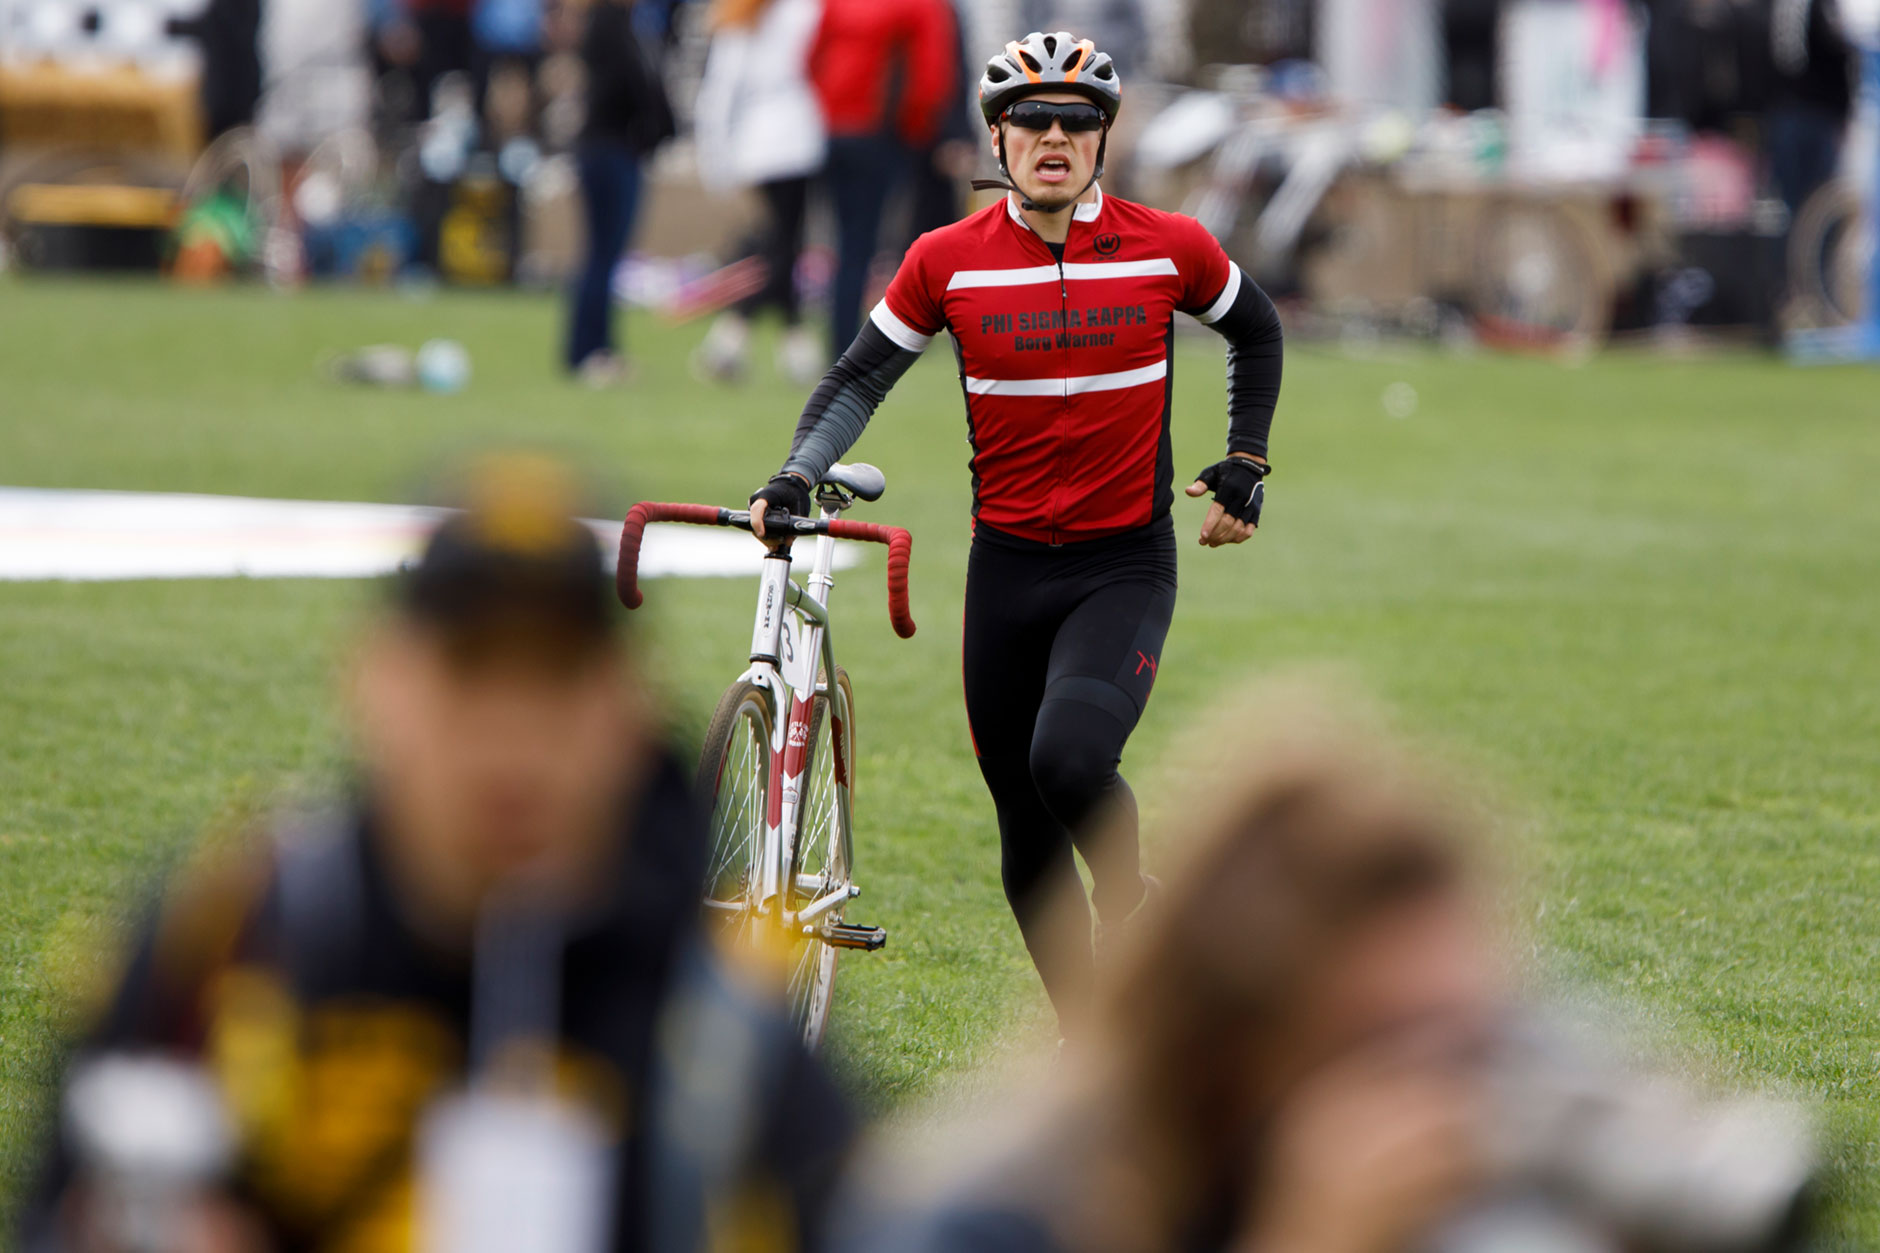 A Phi Sigma Kappa rider races across the infield with a bicycle after a teammate was involved in a crash during the Men's Little 500 at Bill Armstrong Stadium on Saturday, April 22, 2017. (James Brosher/IU Communications)